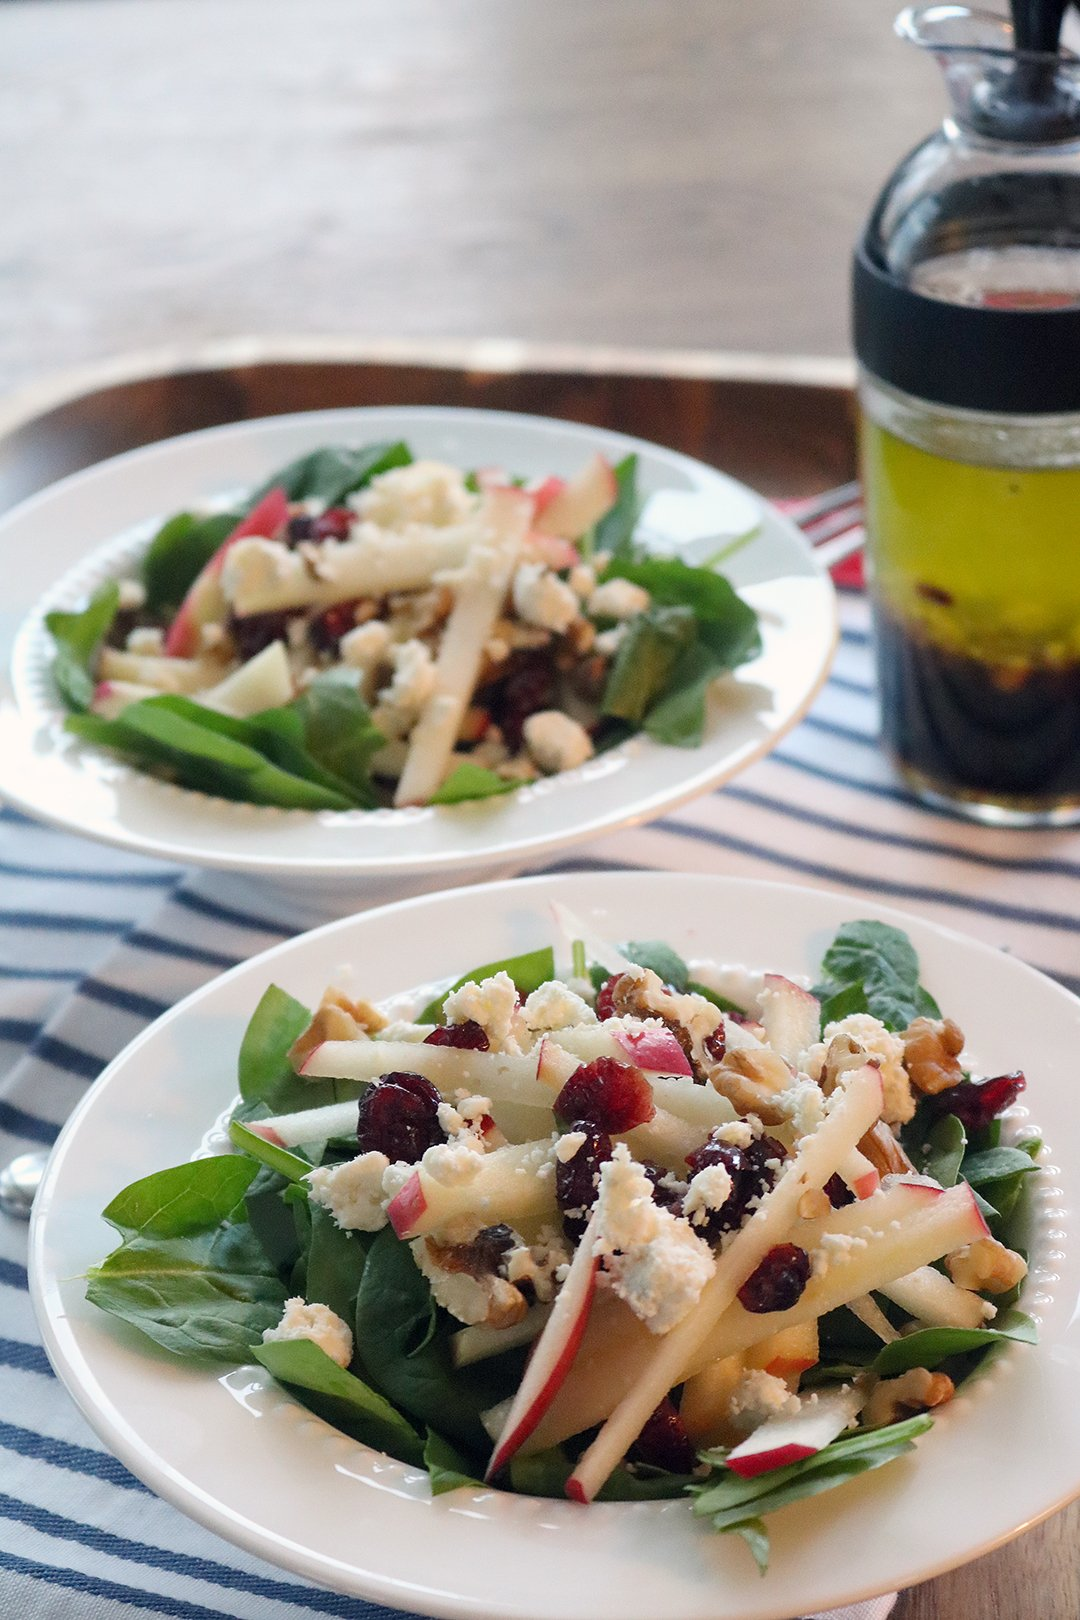 Two salad plates on a striped napkin with salad dressing behind. Apple sticks, dried cranberries, gorgonzola cheese and candied walnuts.